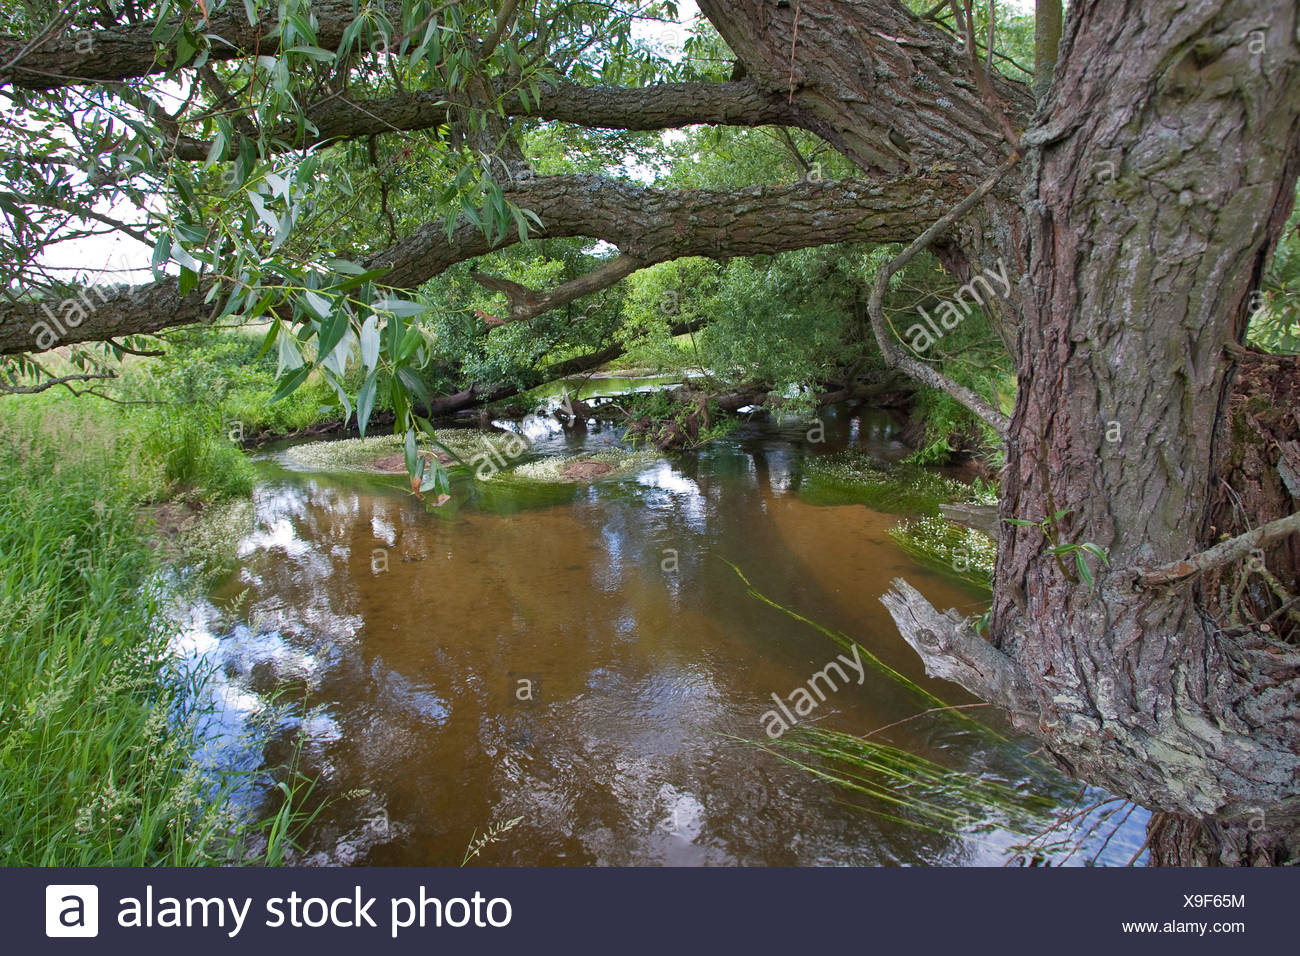 natural lowland stream with willows and hydrophytes, Germany - Stock Image